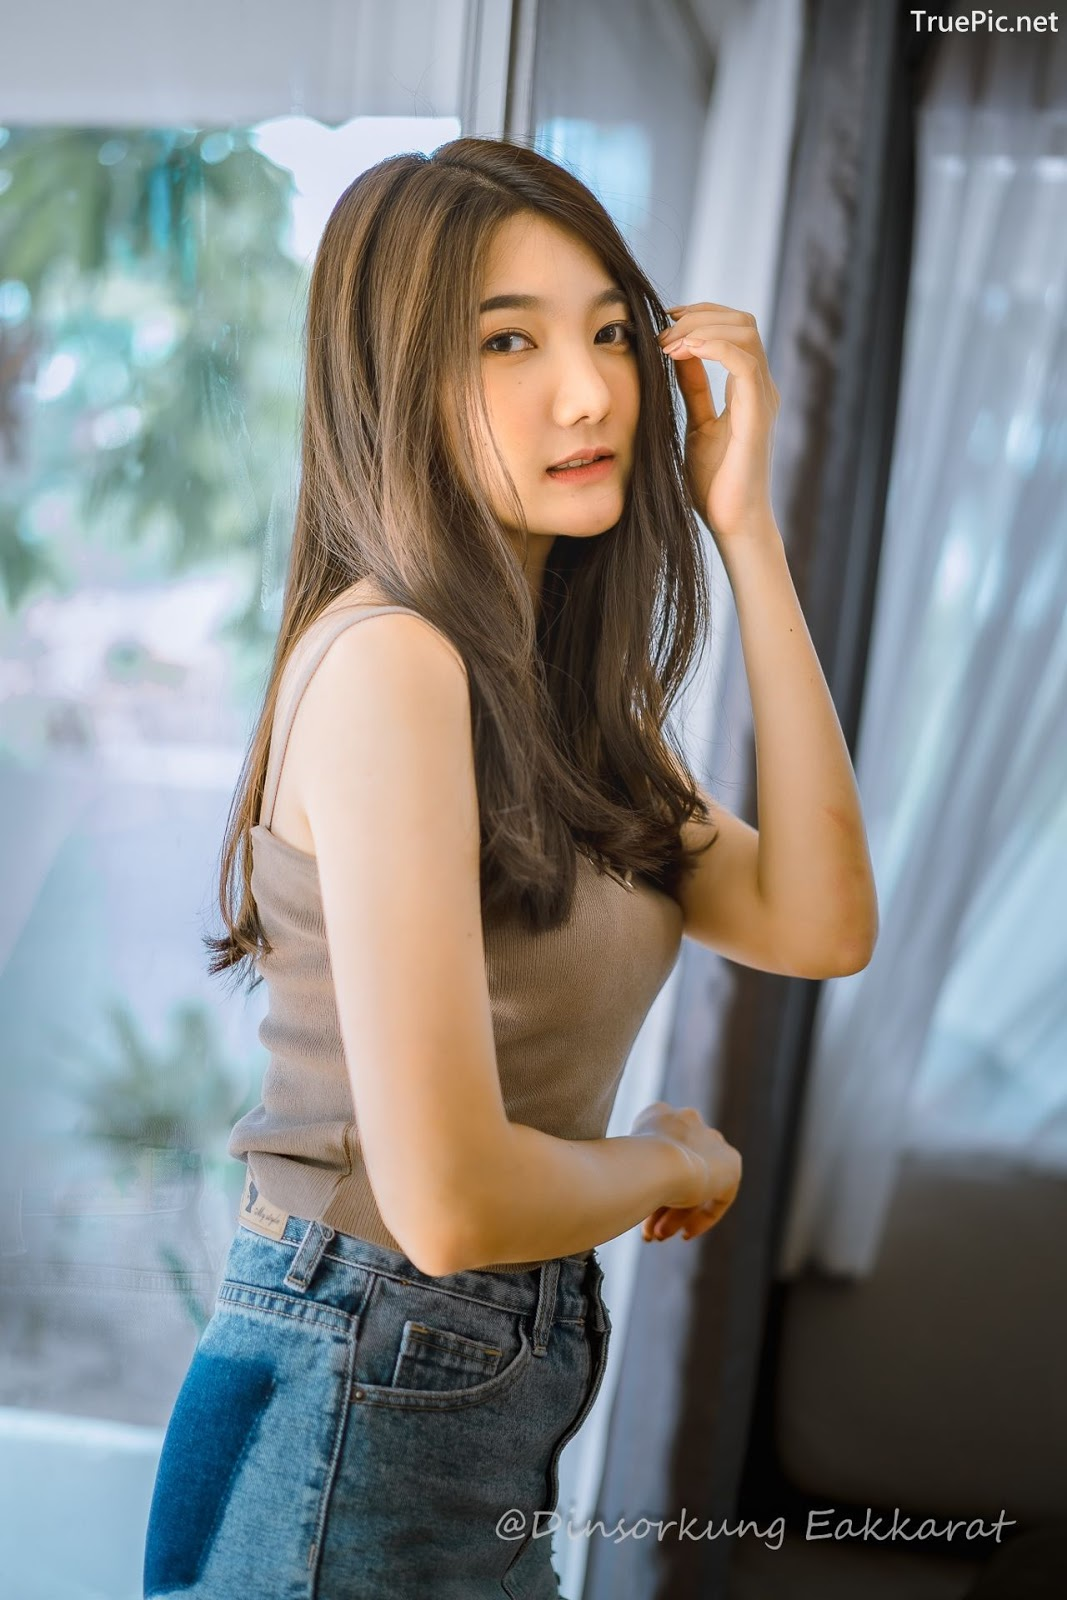 Image-Thailand-Cute-Model-Creammy-Chanama-Concept-Naughty-Angel-Girl-TruePic.net- Picture-2